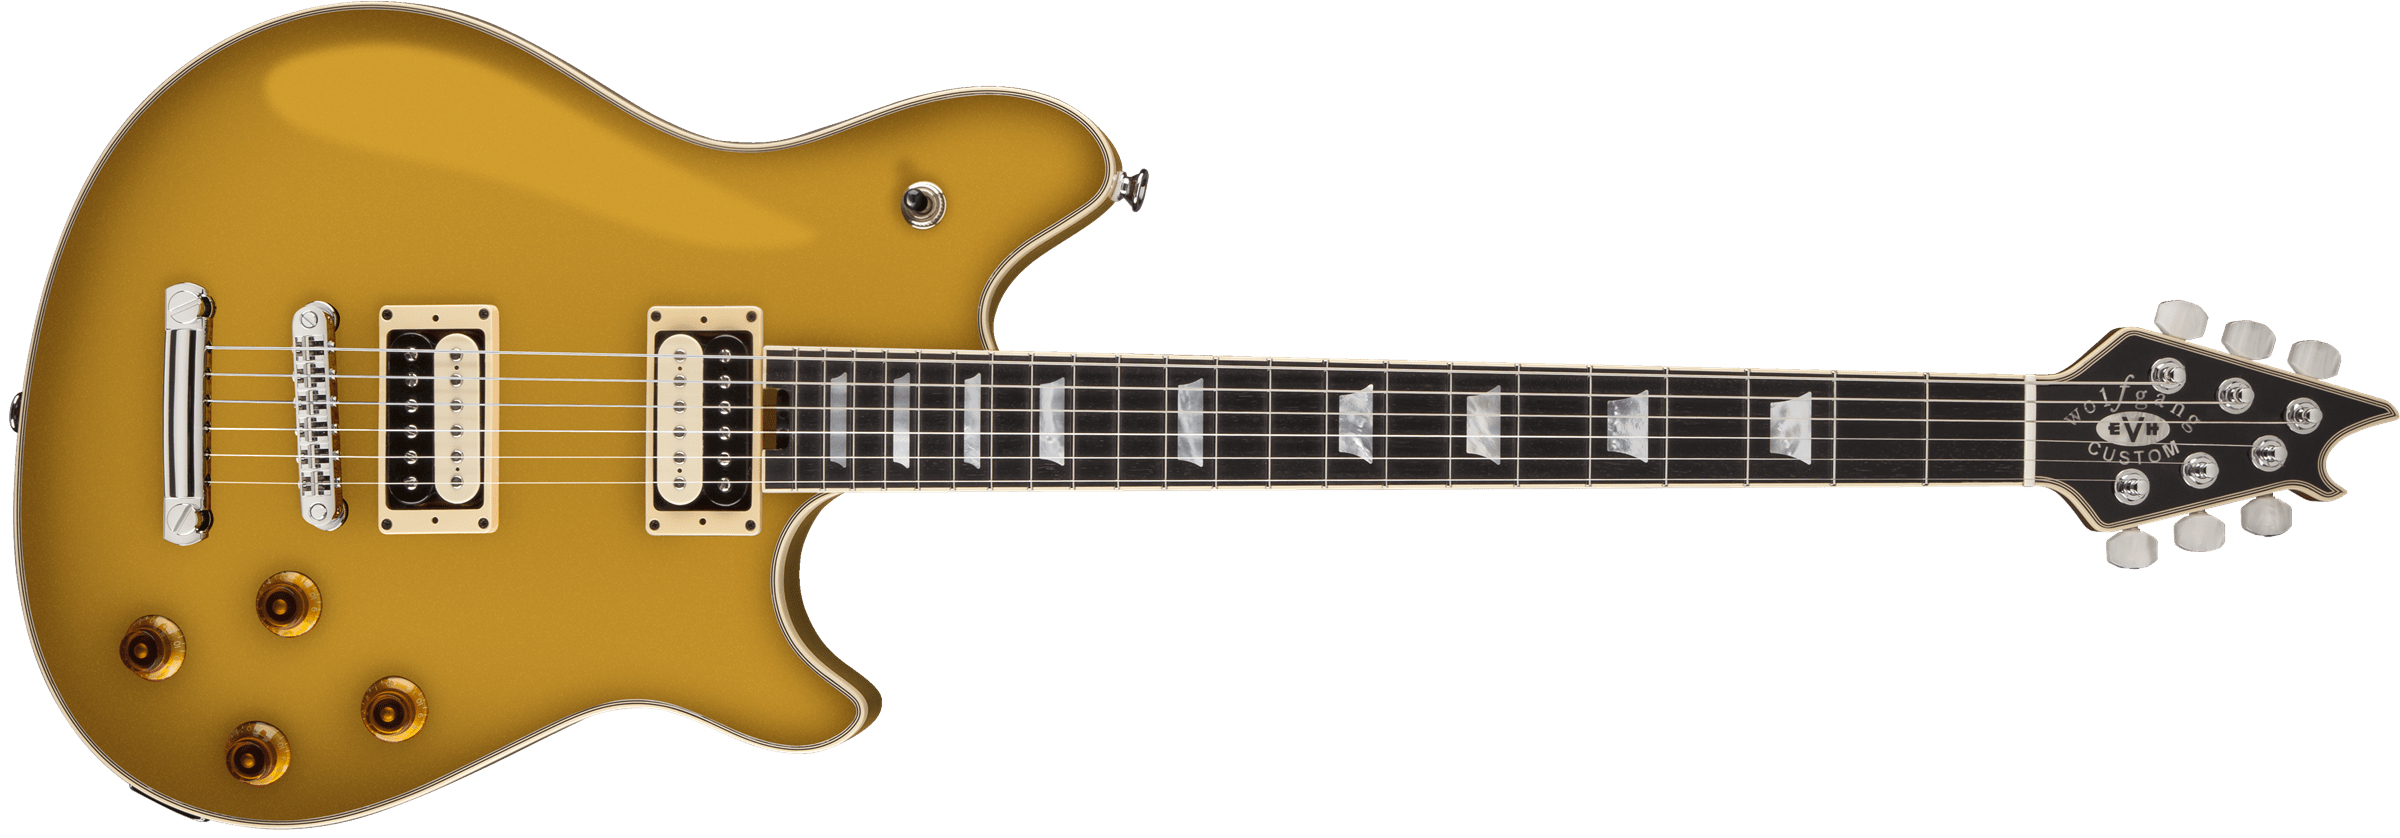 Project evh understanding the. Clipart guitar old guitar